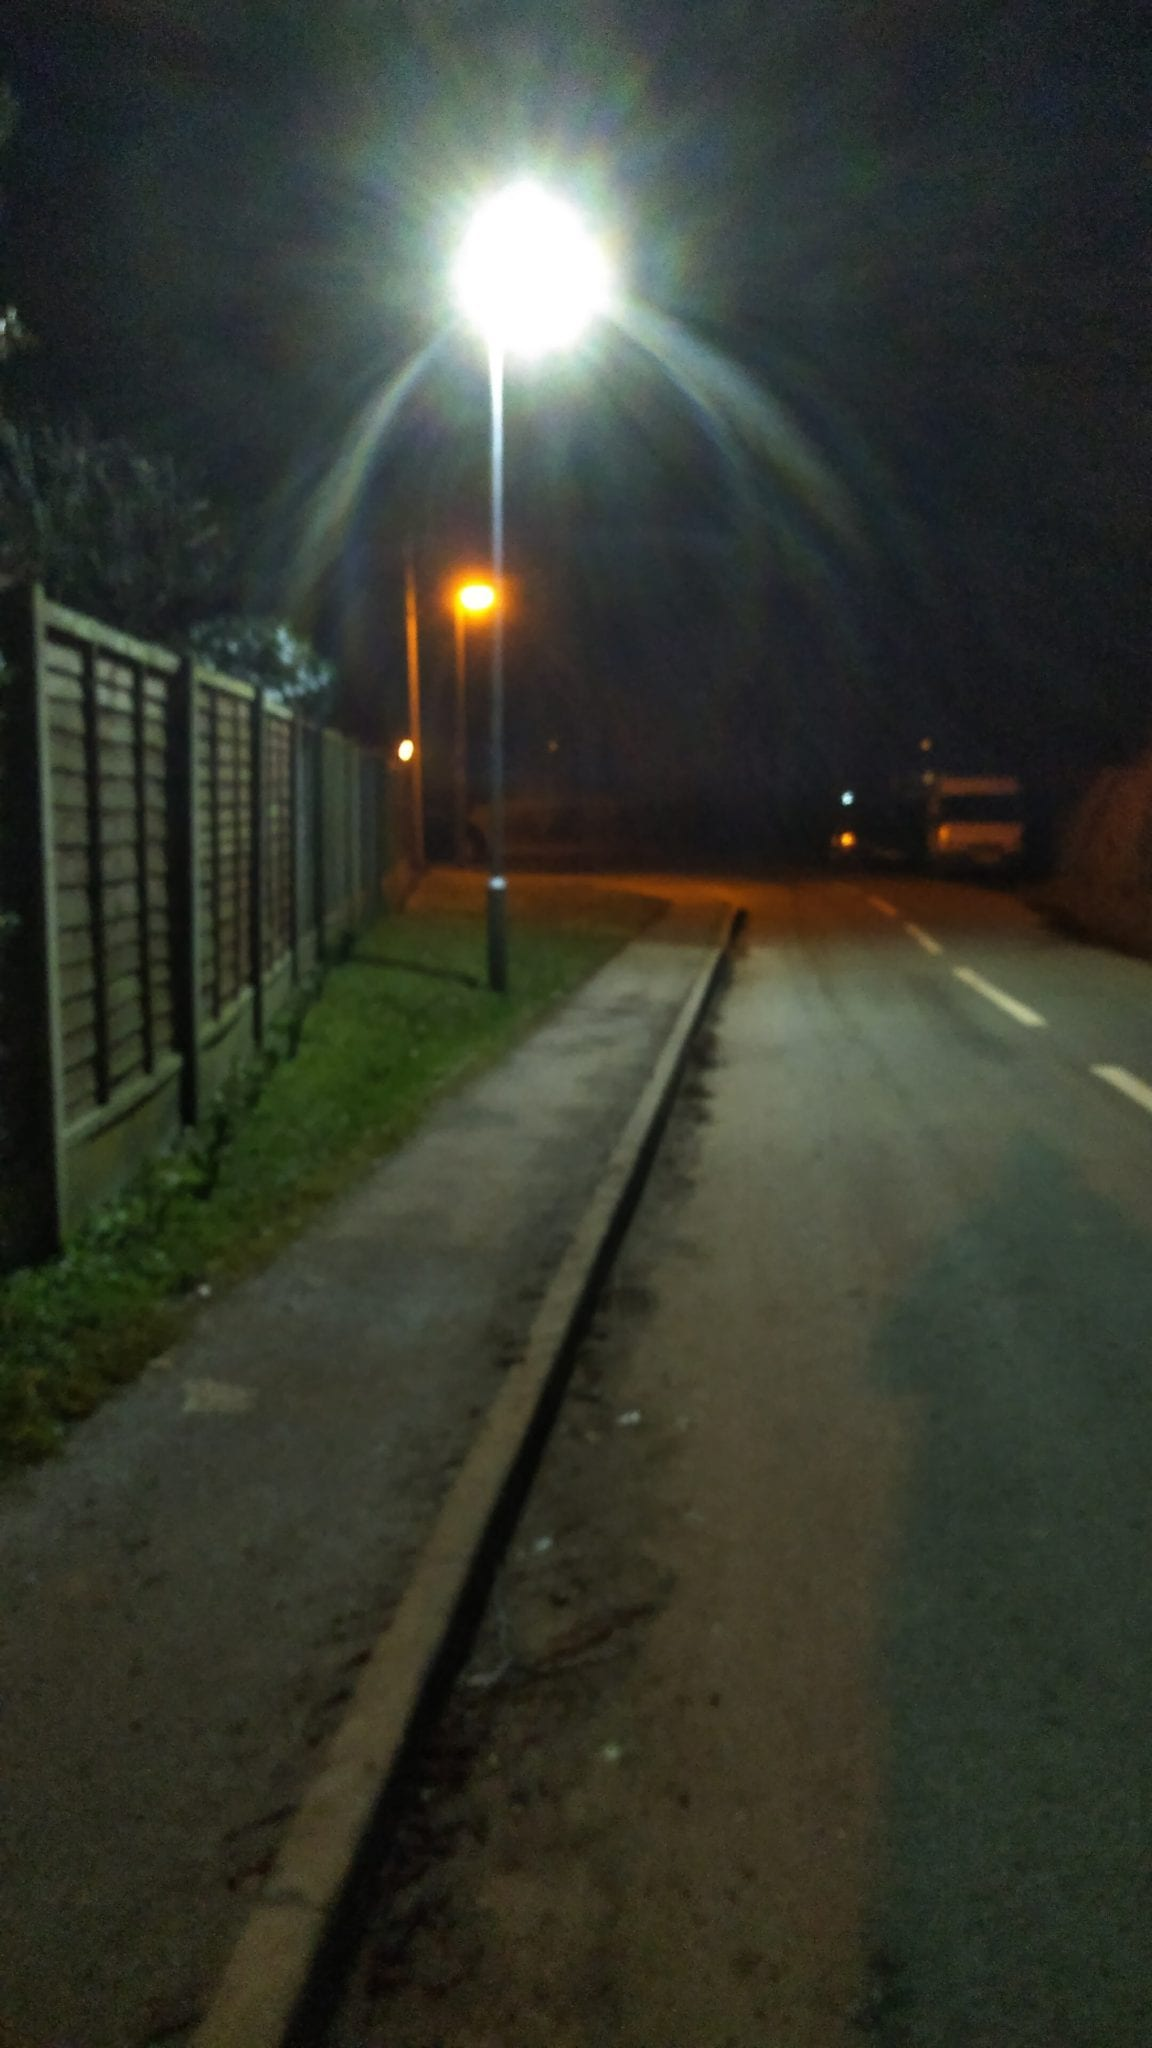 West Felton LED street light with an old Sodium light behind